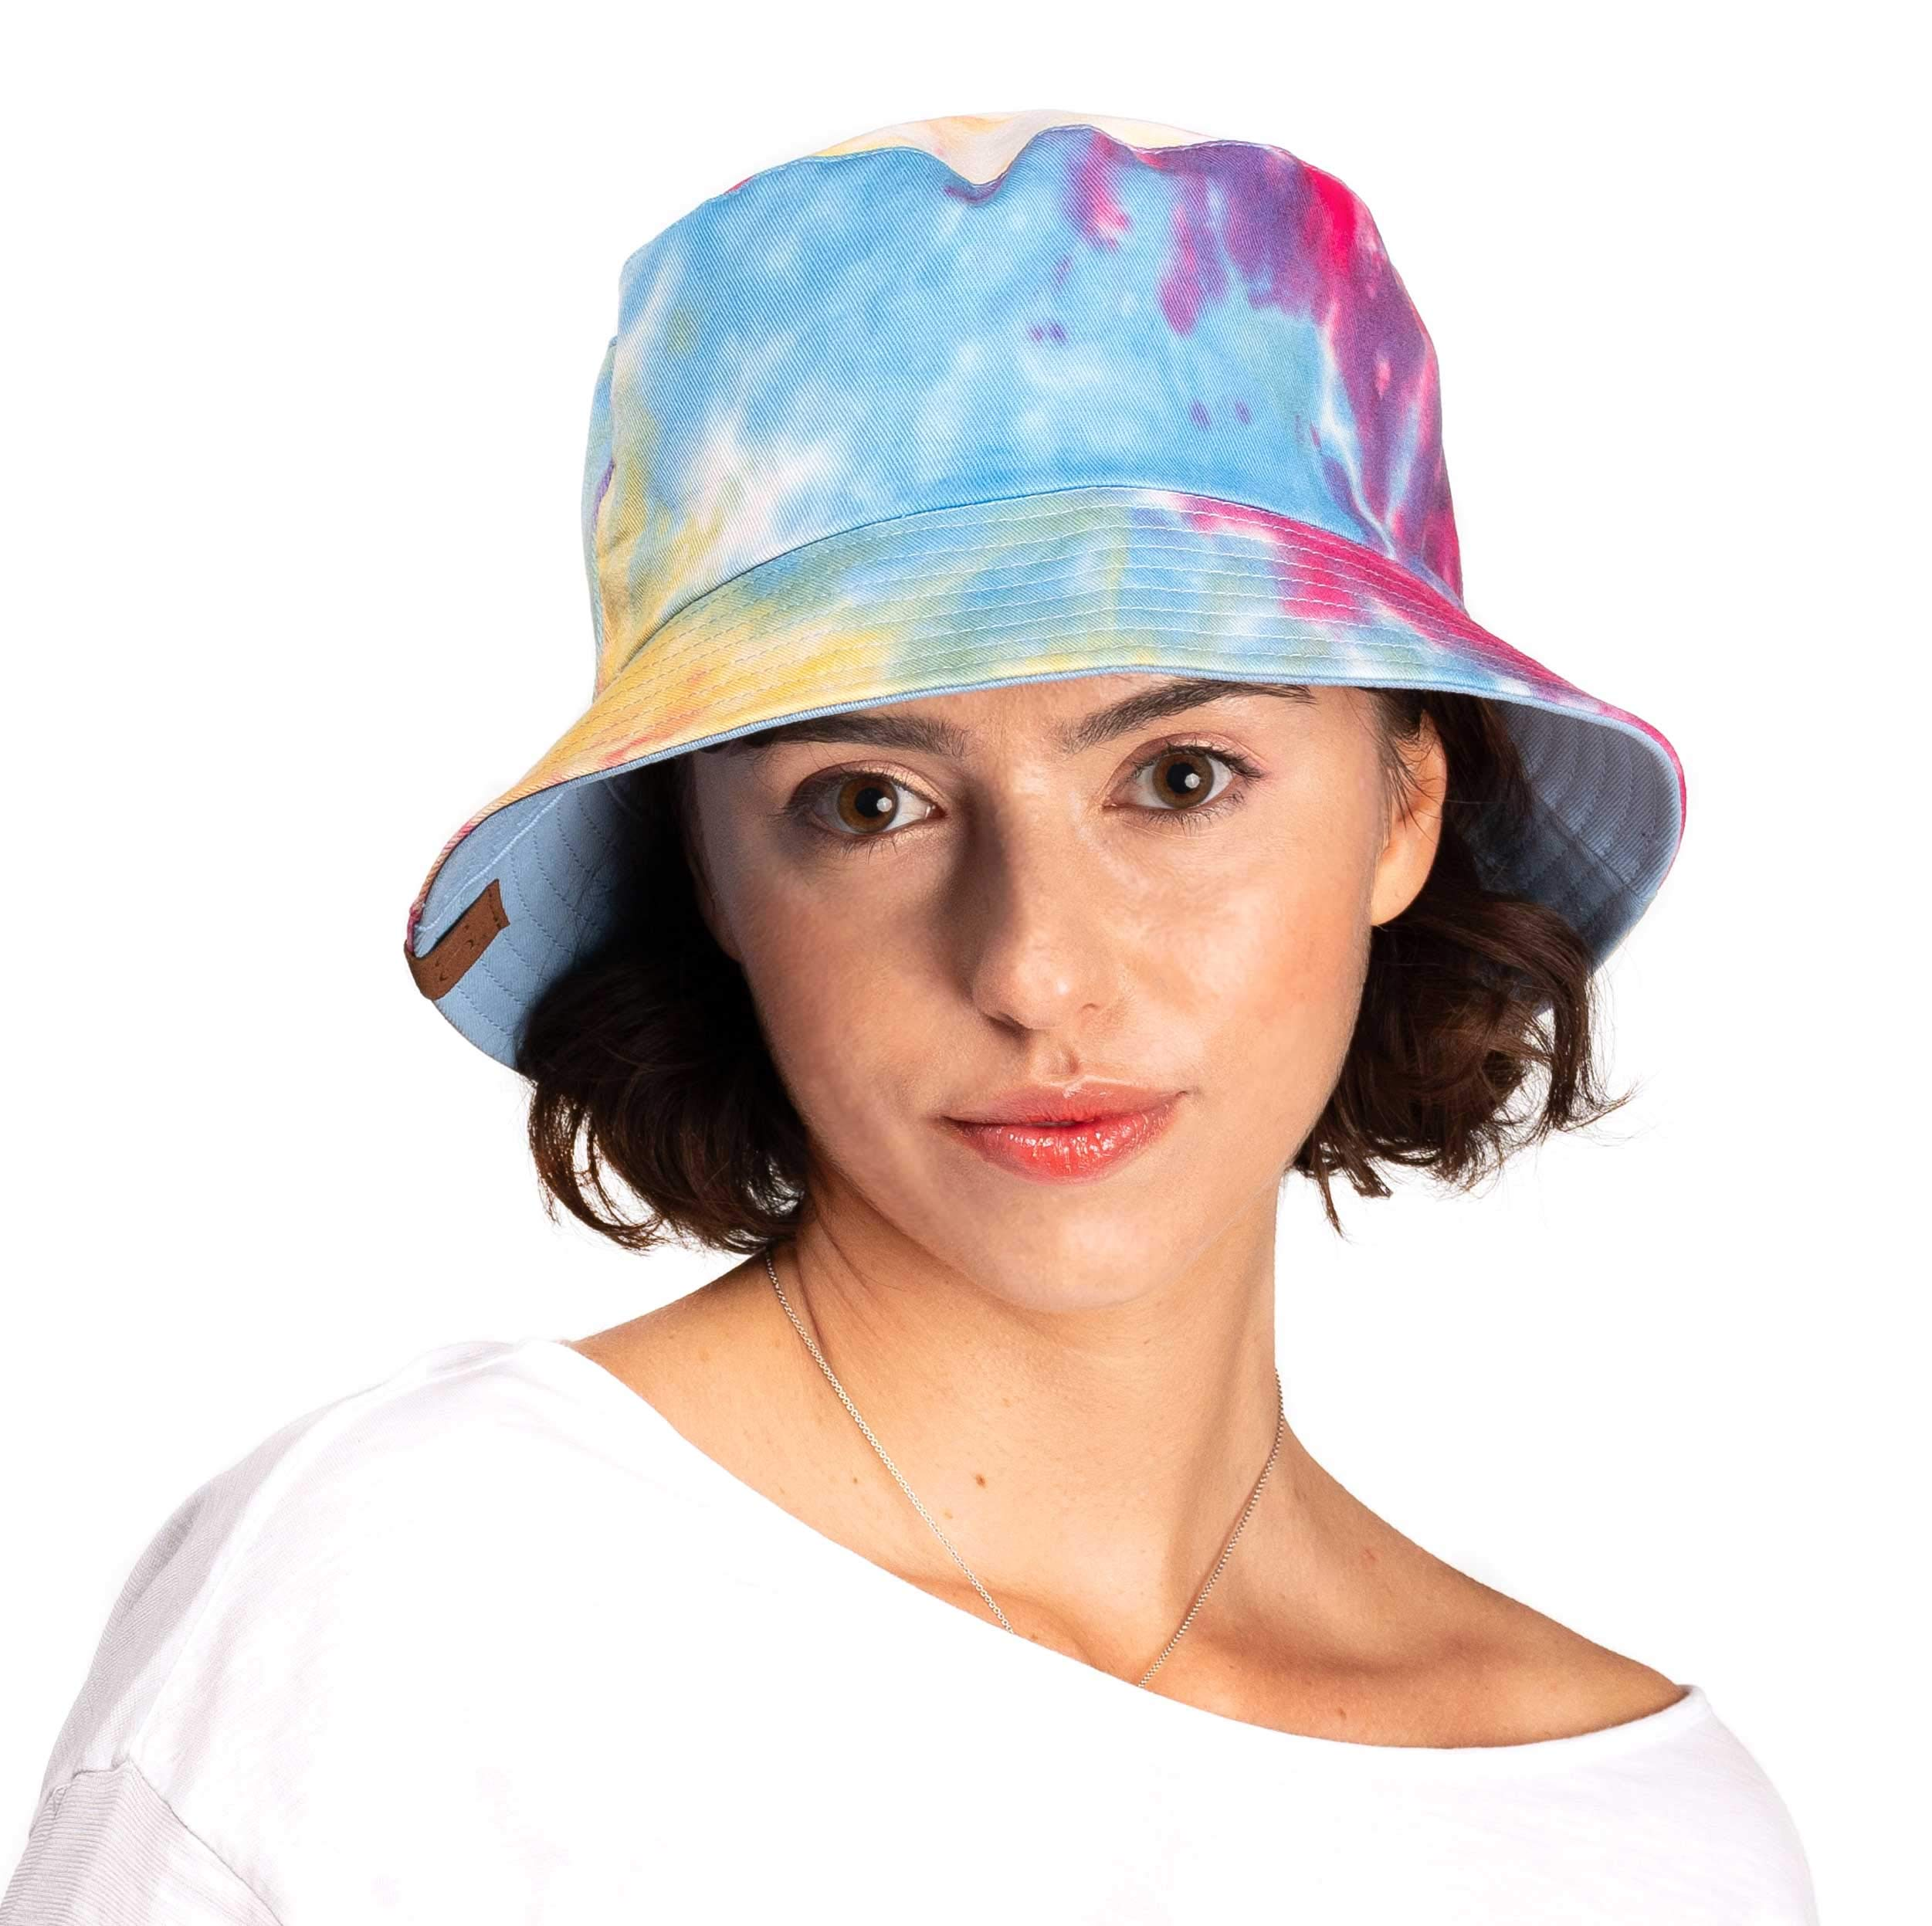 C.C Exclusives Galaxy Bucket Hat Cotton Reversible Tie Dyed Boonie Cap(ST-2176) (Hot Pink)